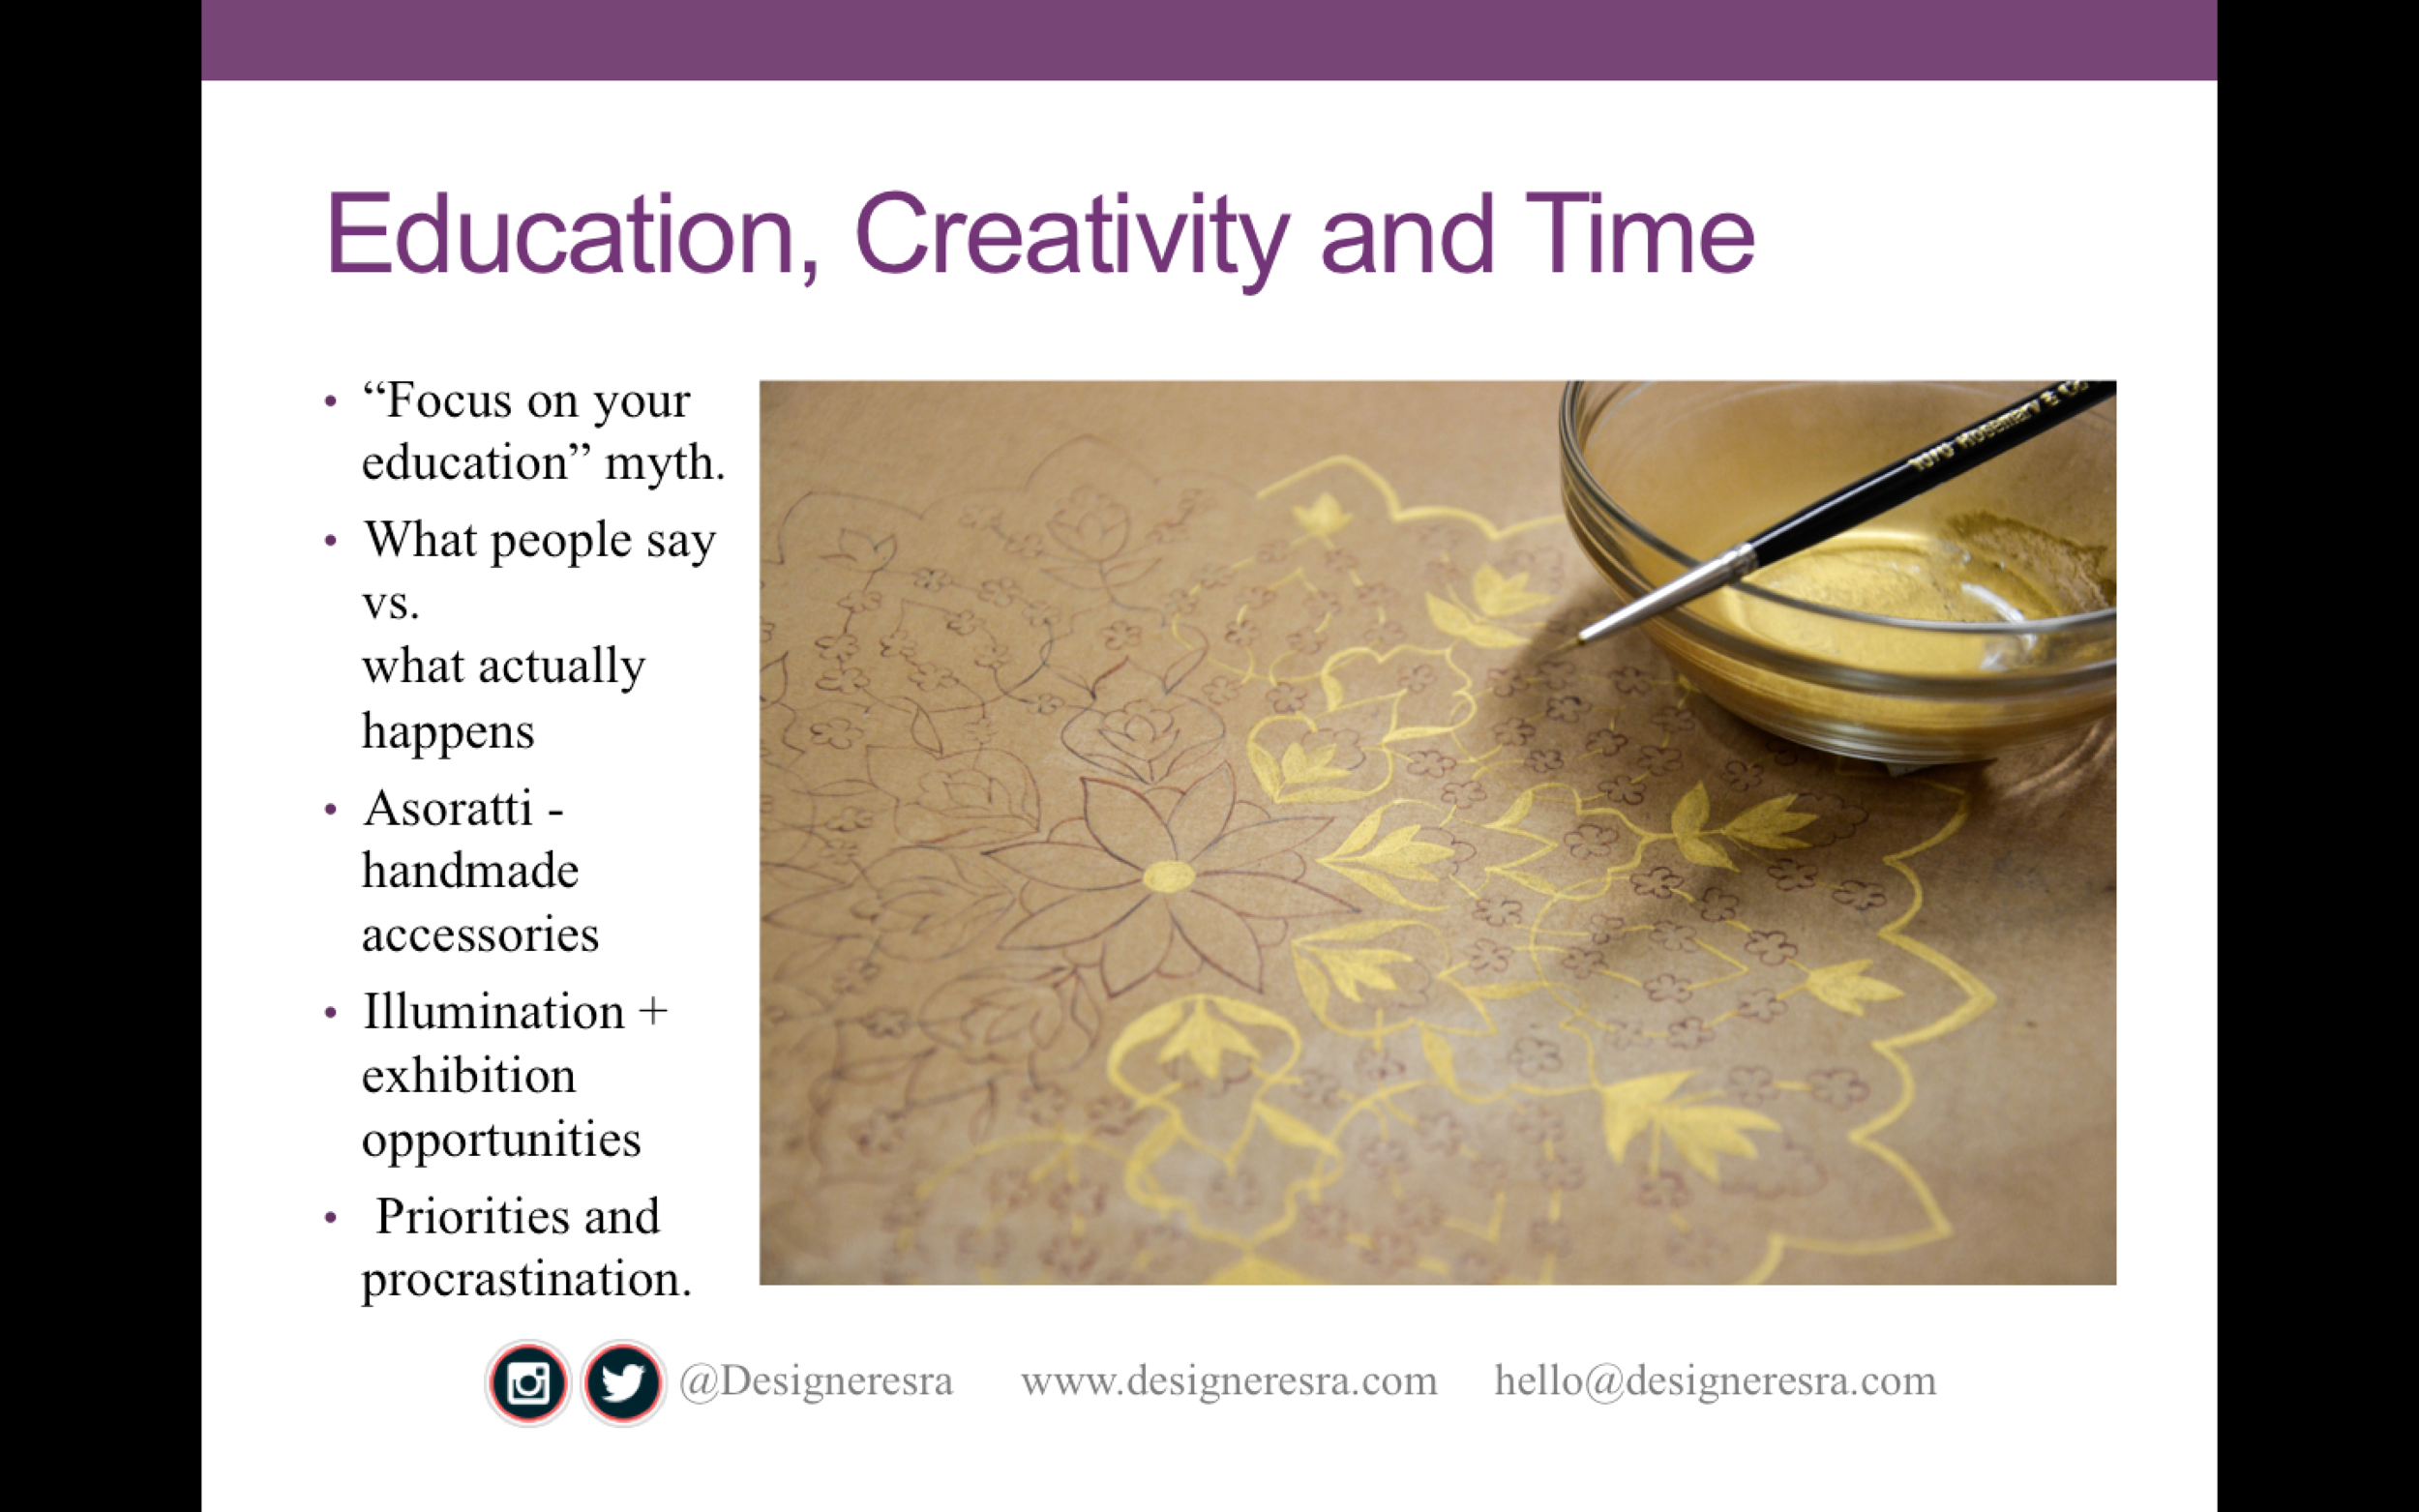 Education, Creativity and Time